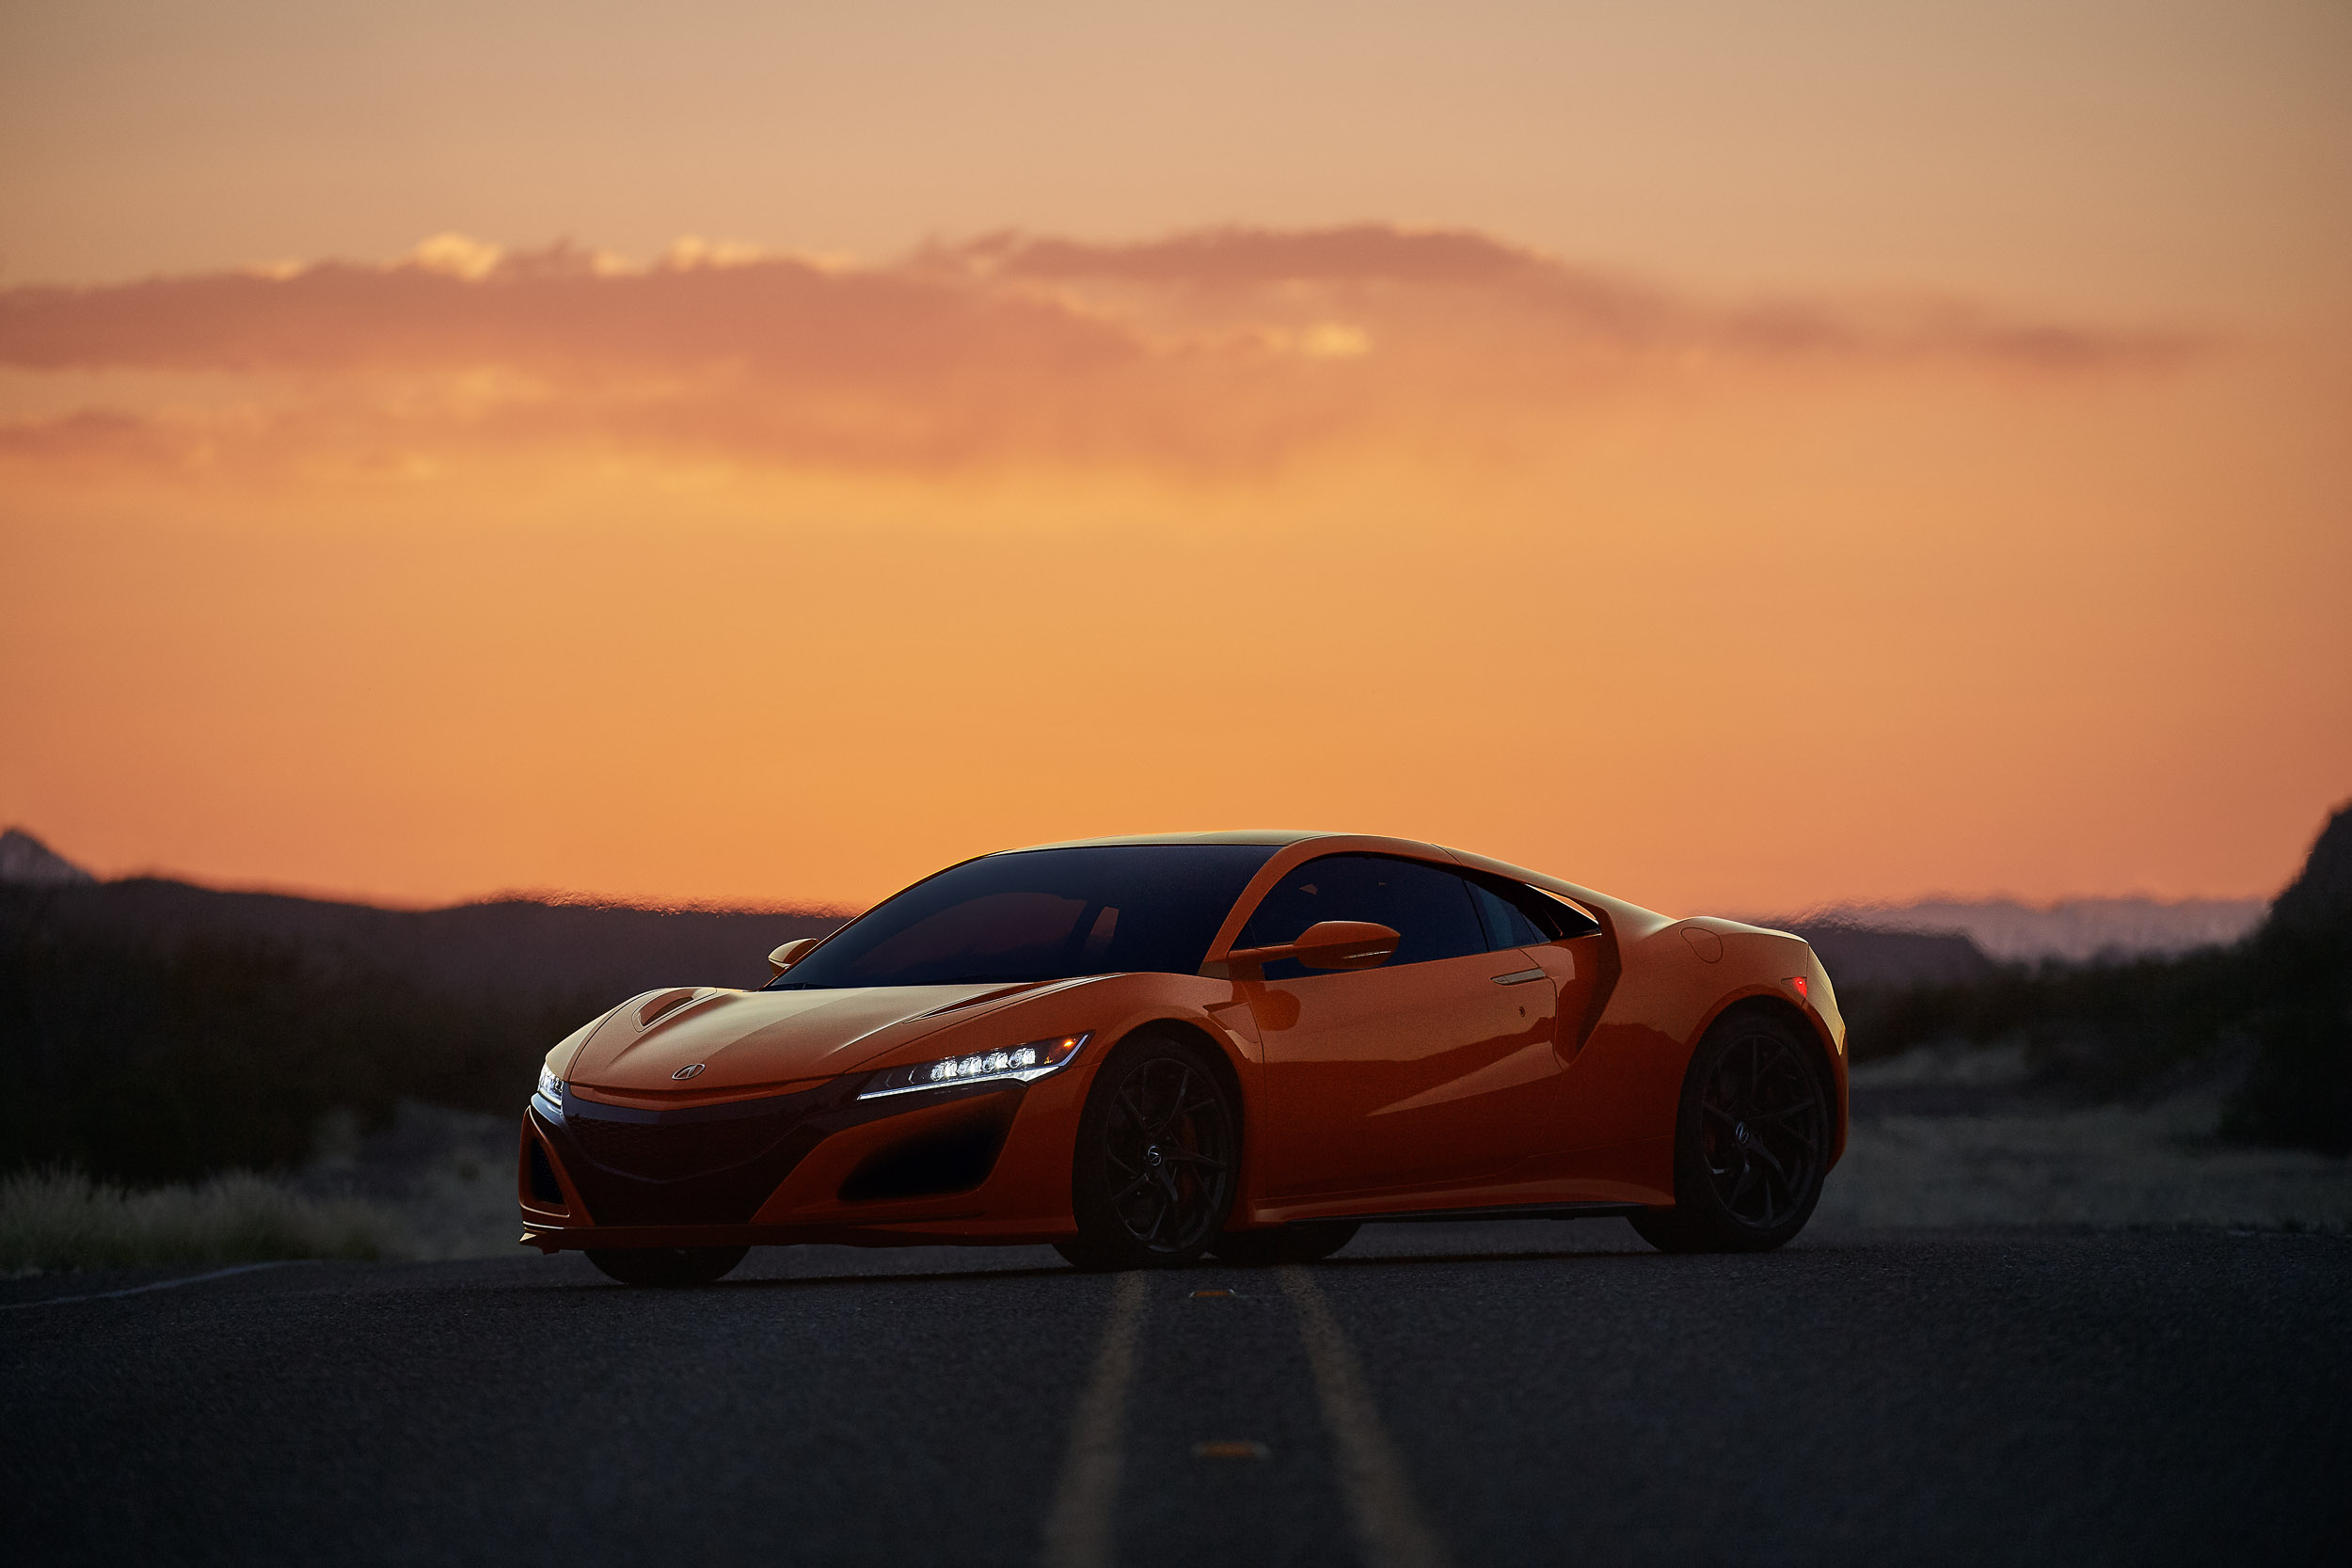 201904-BJP-Acura-day05-nsx-ext-007742_f1-2